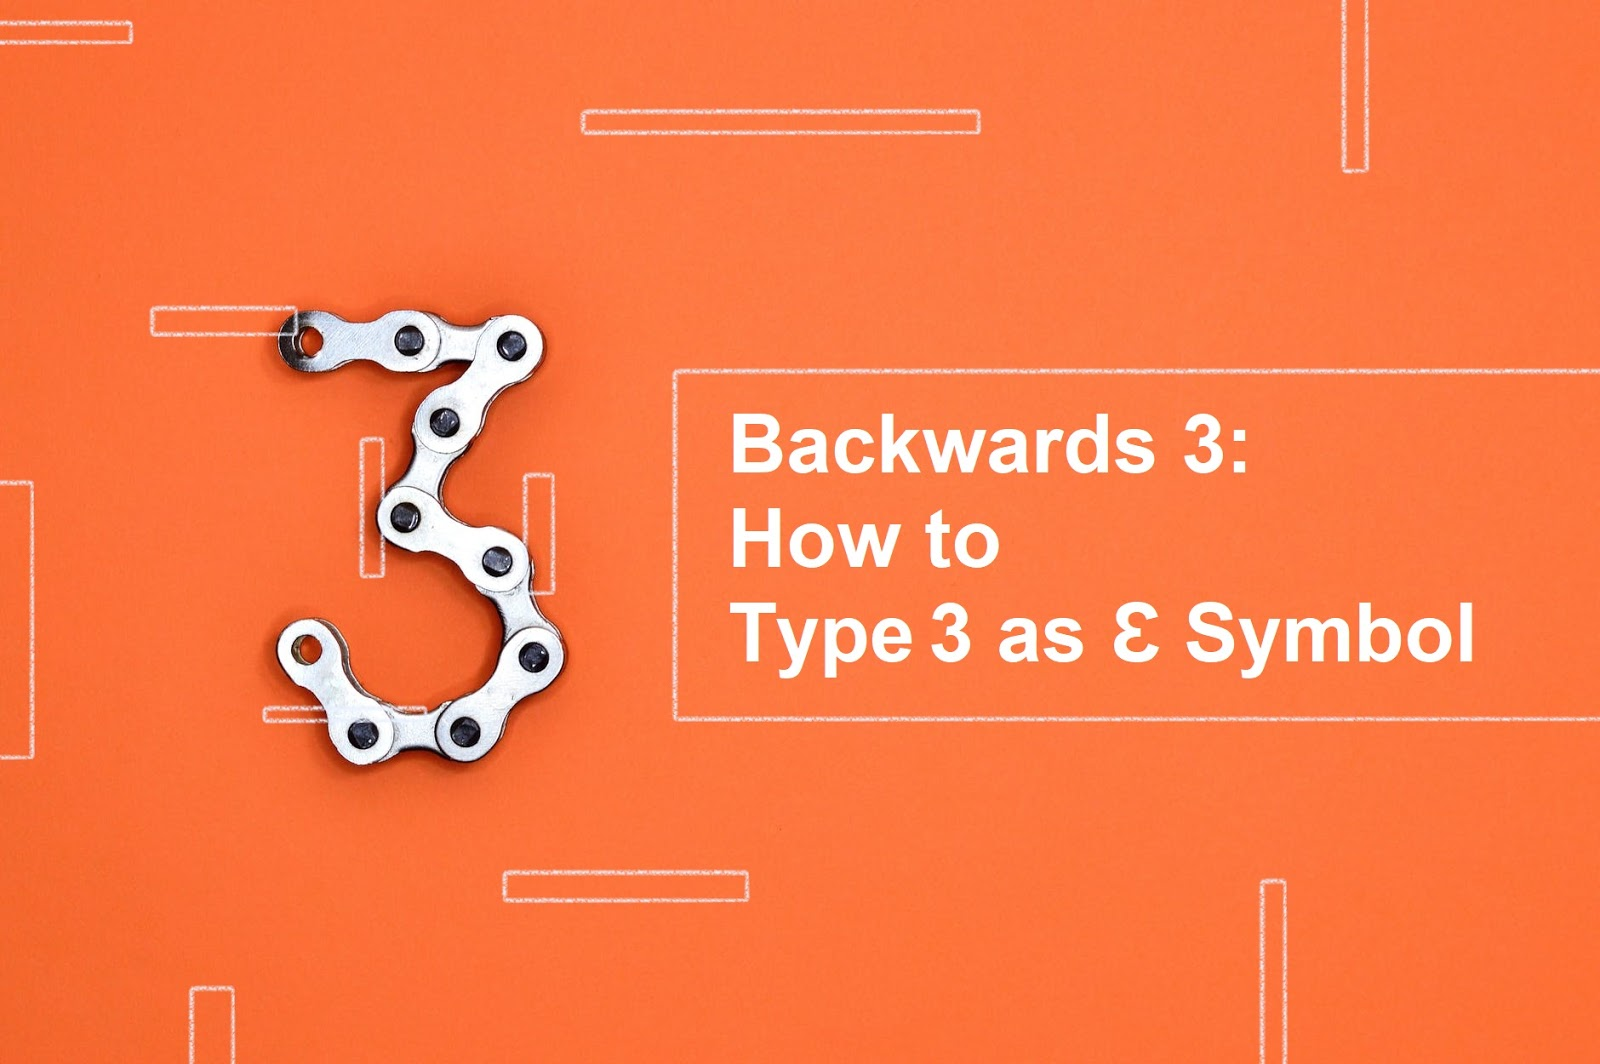 Backwards 3: How to Type 3 as Ɛ Symbol on Pc, Android & iPhone